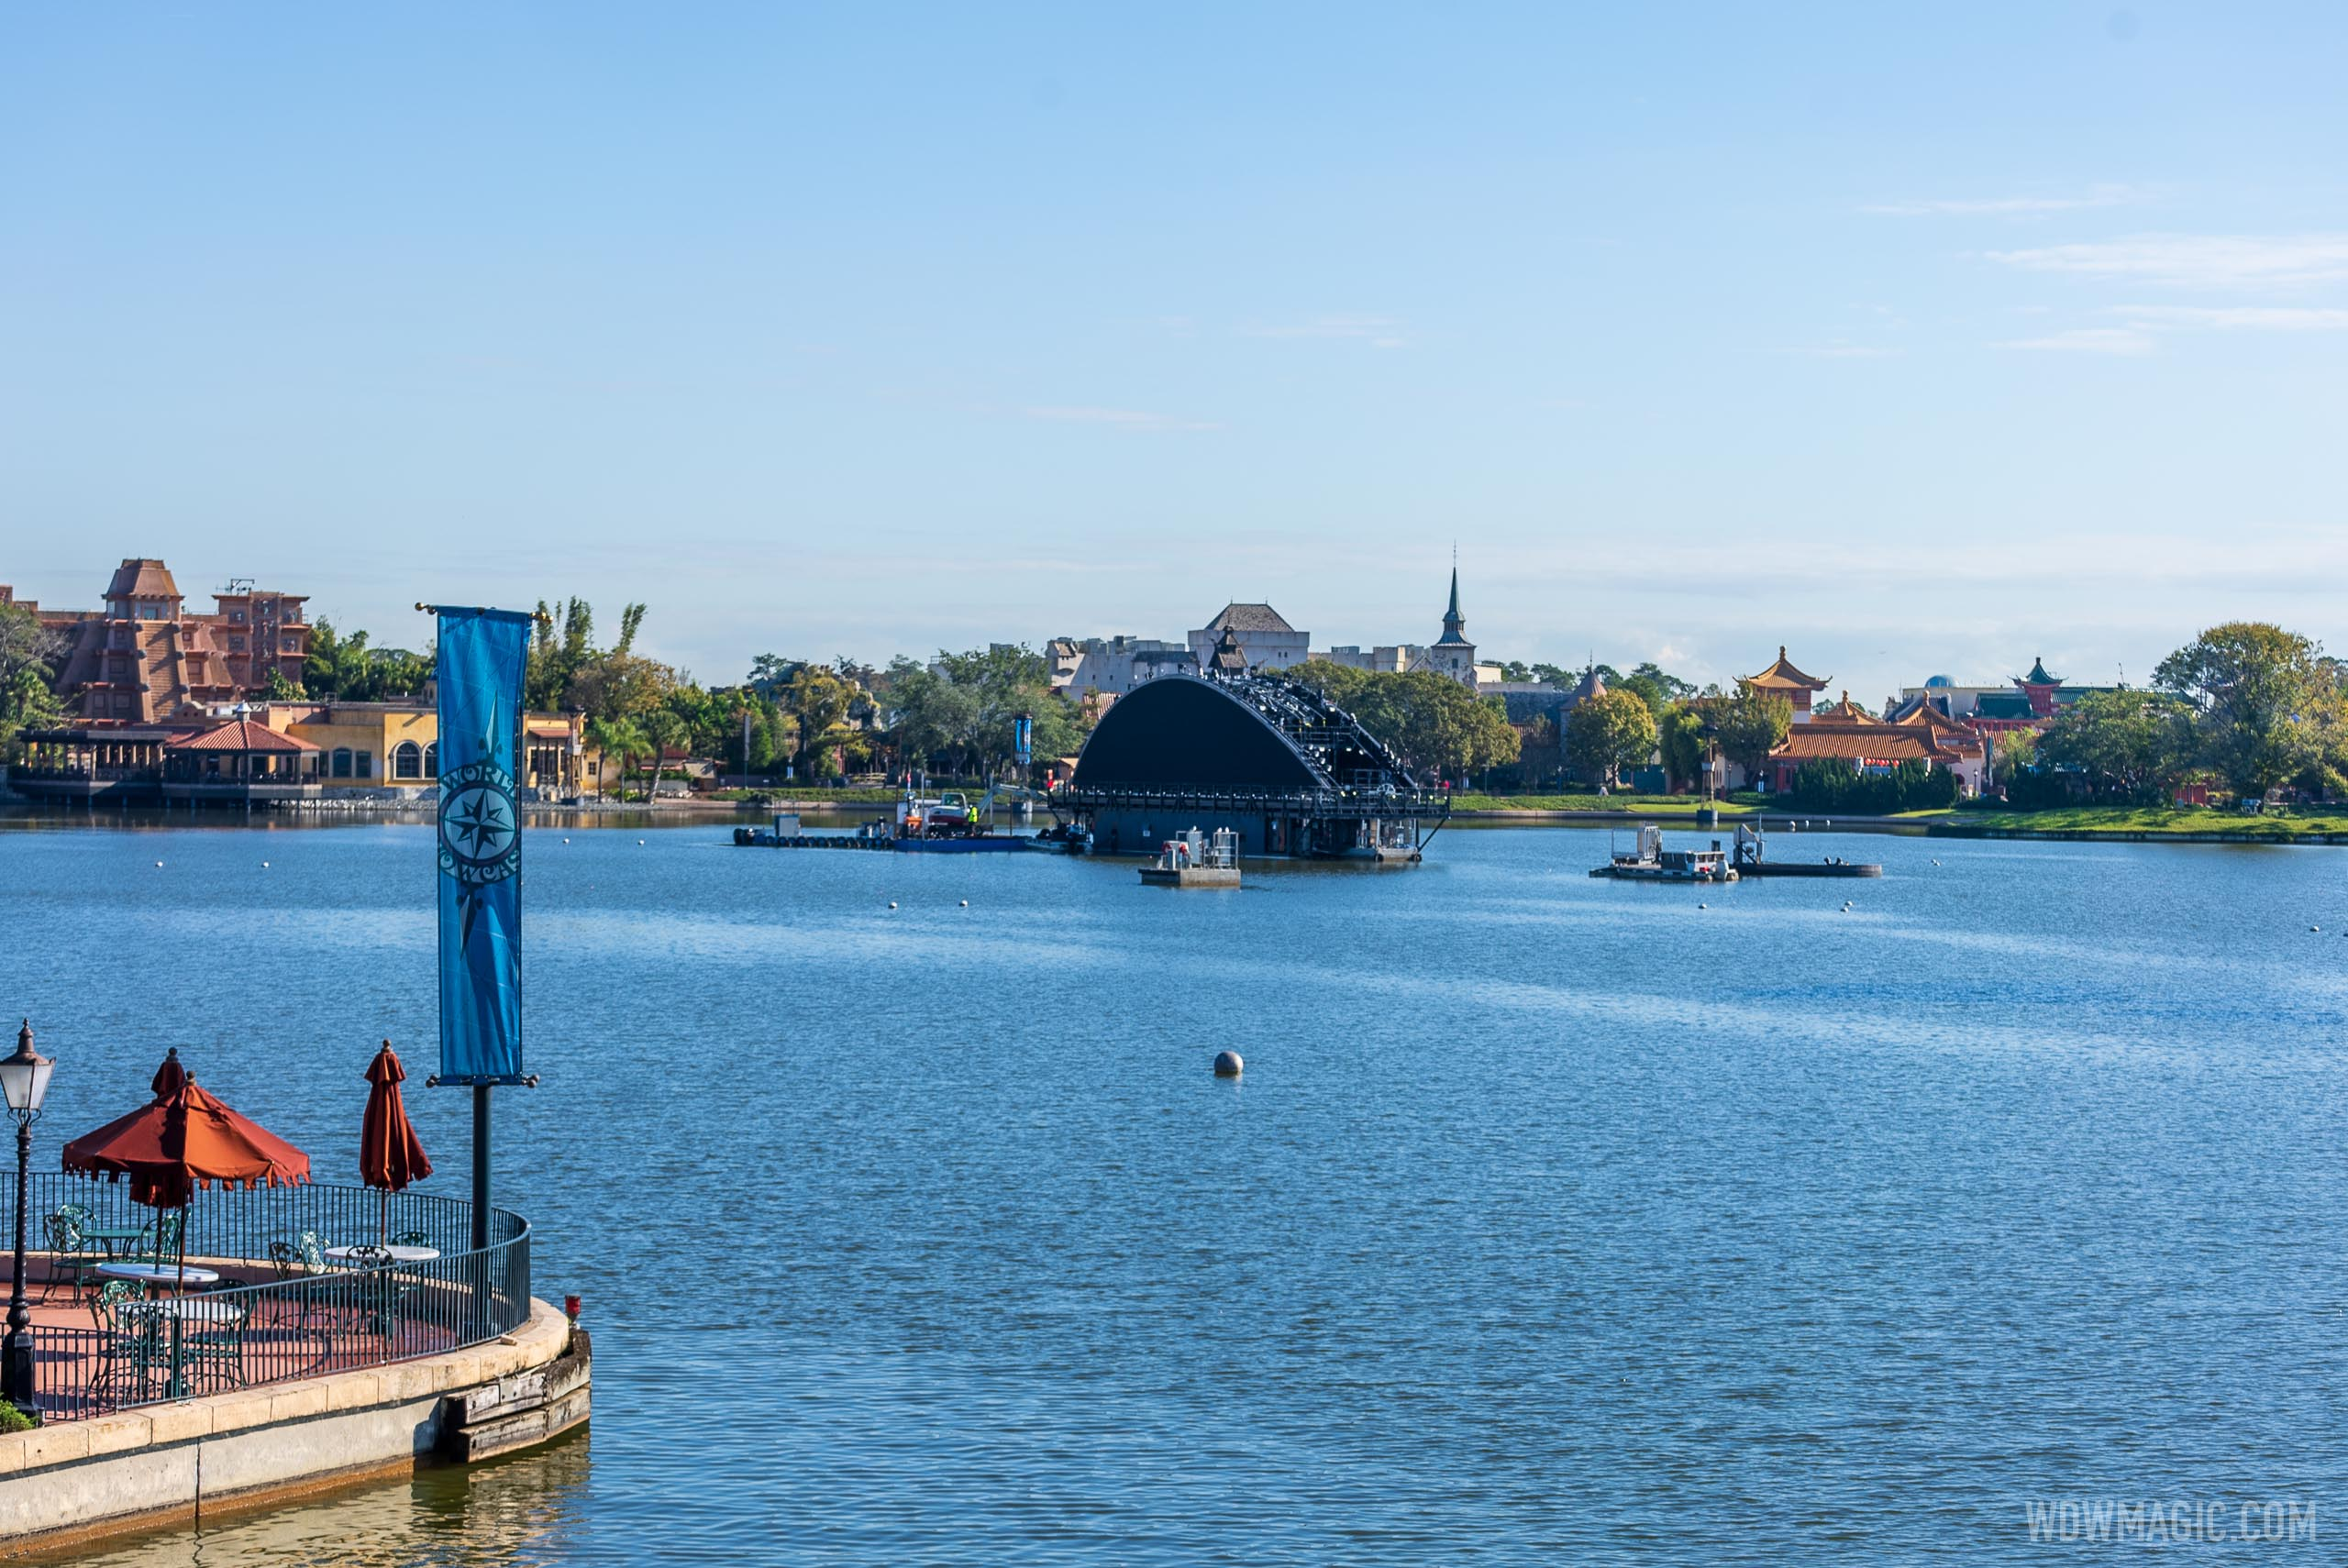 First harmonious show platform barge in World Showcase Lagoon